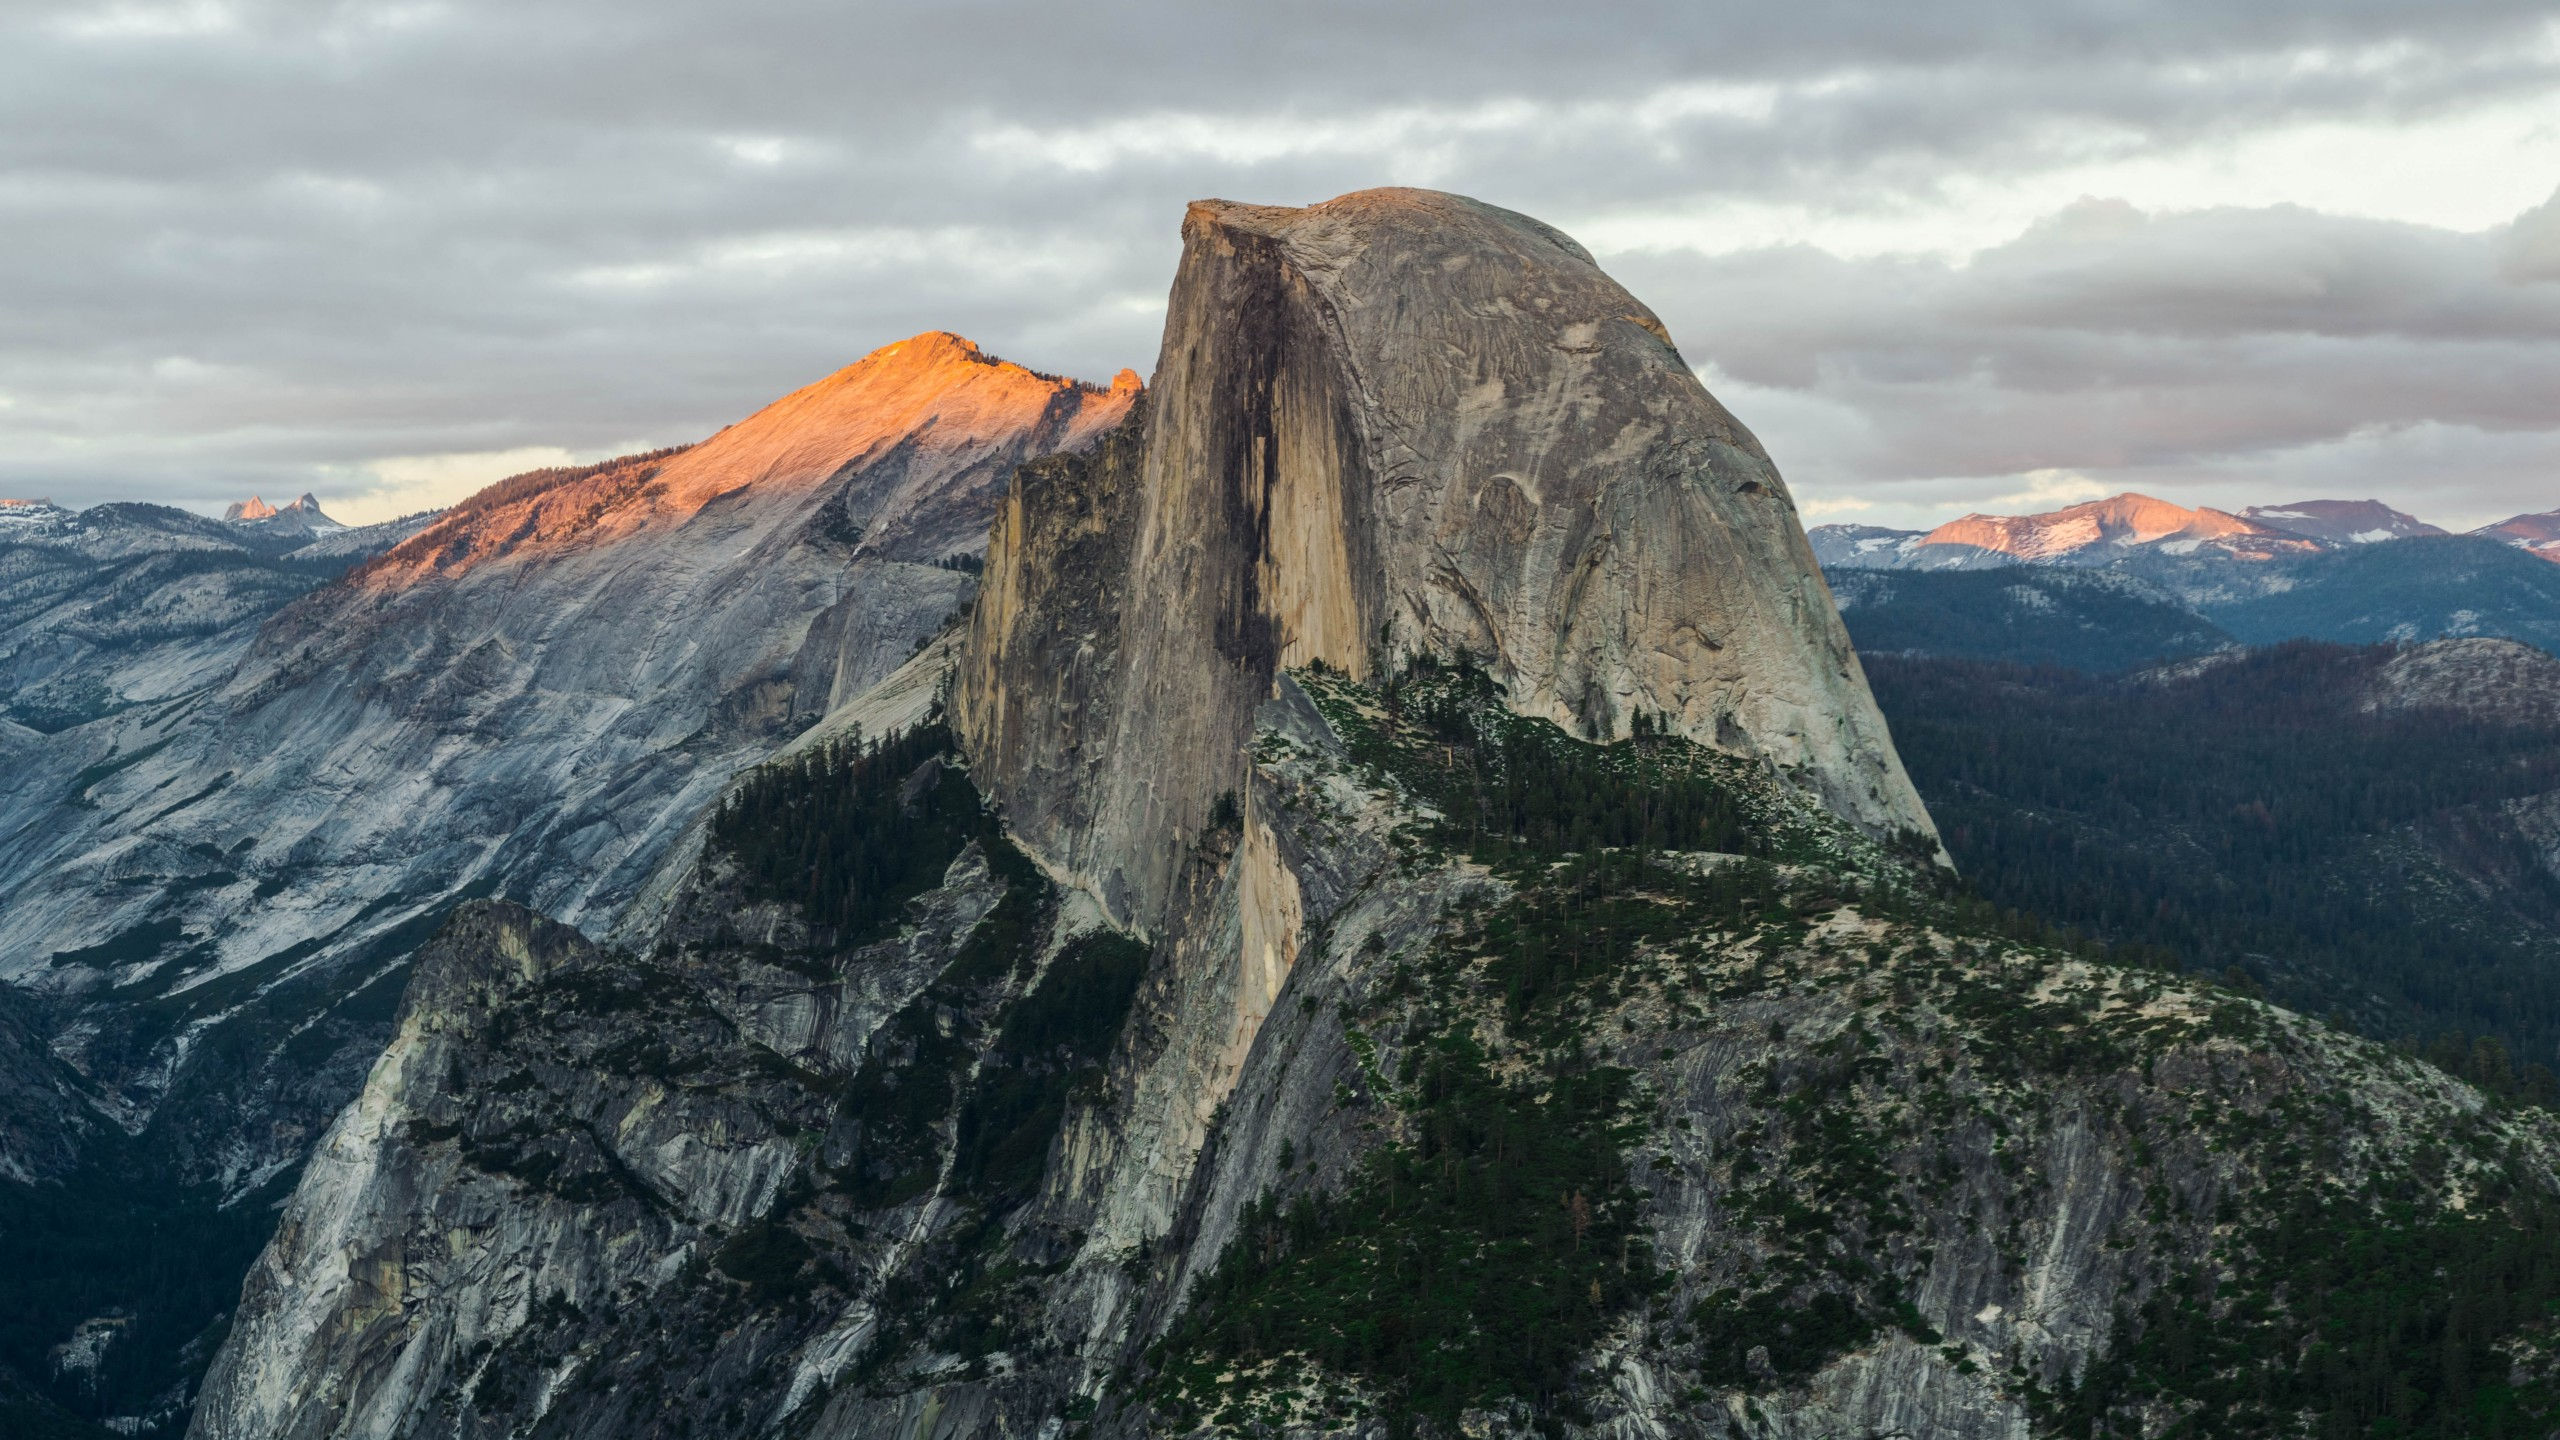 4k Fall Mountain Wallpaper Wallpaper Half Dome Mountain Yosemite National Park